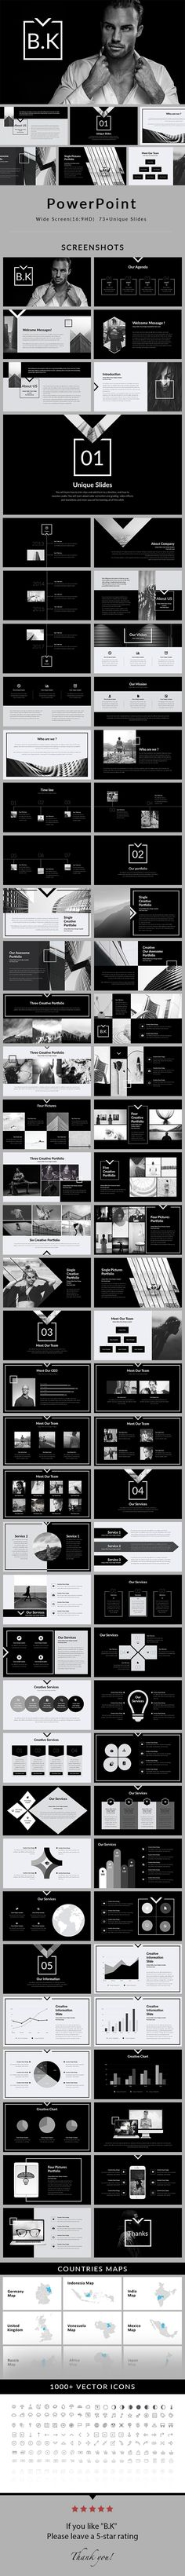 B.K - PowerPoint #Presentation #Template - Creative #PowerPoint Templates Download here:  https://graphicriver.net/item/bk-powerpoint-presentation-template/20155194?ref=alena994